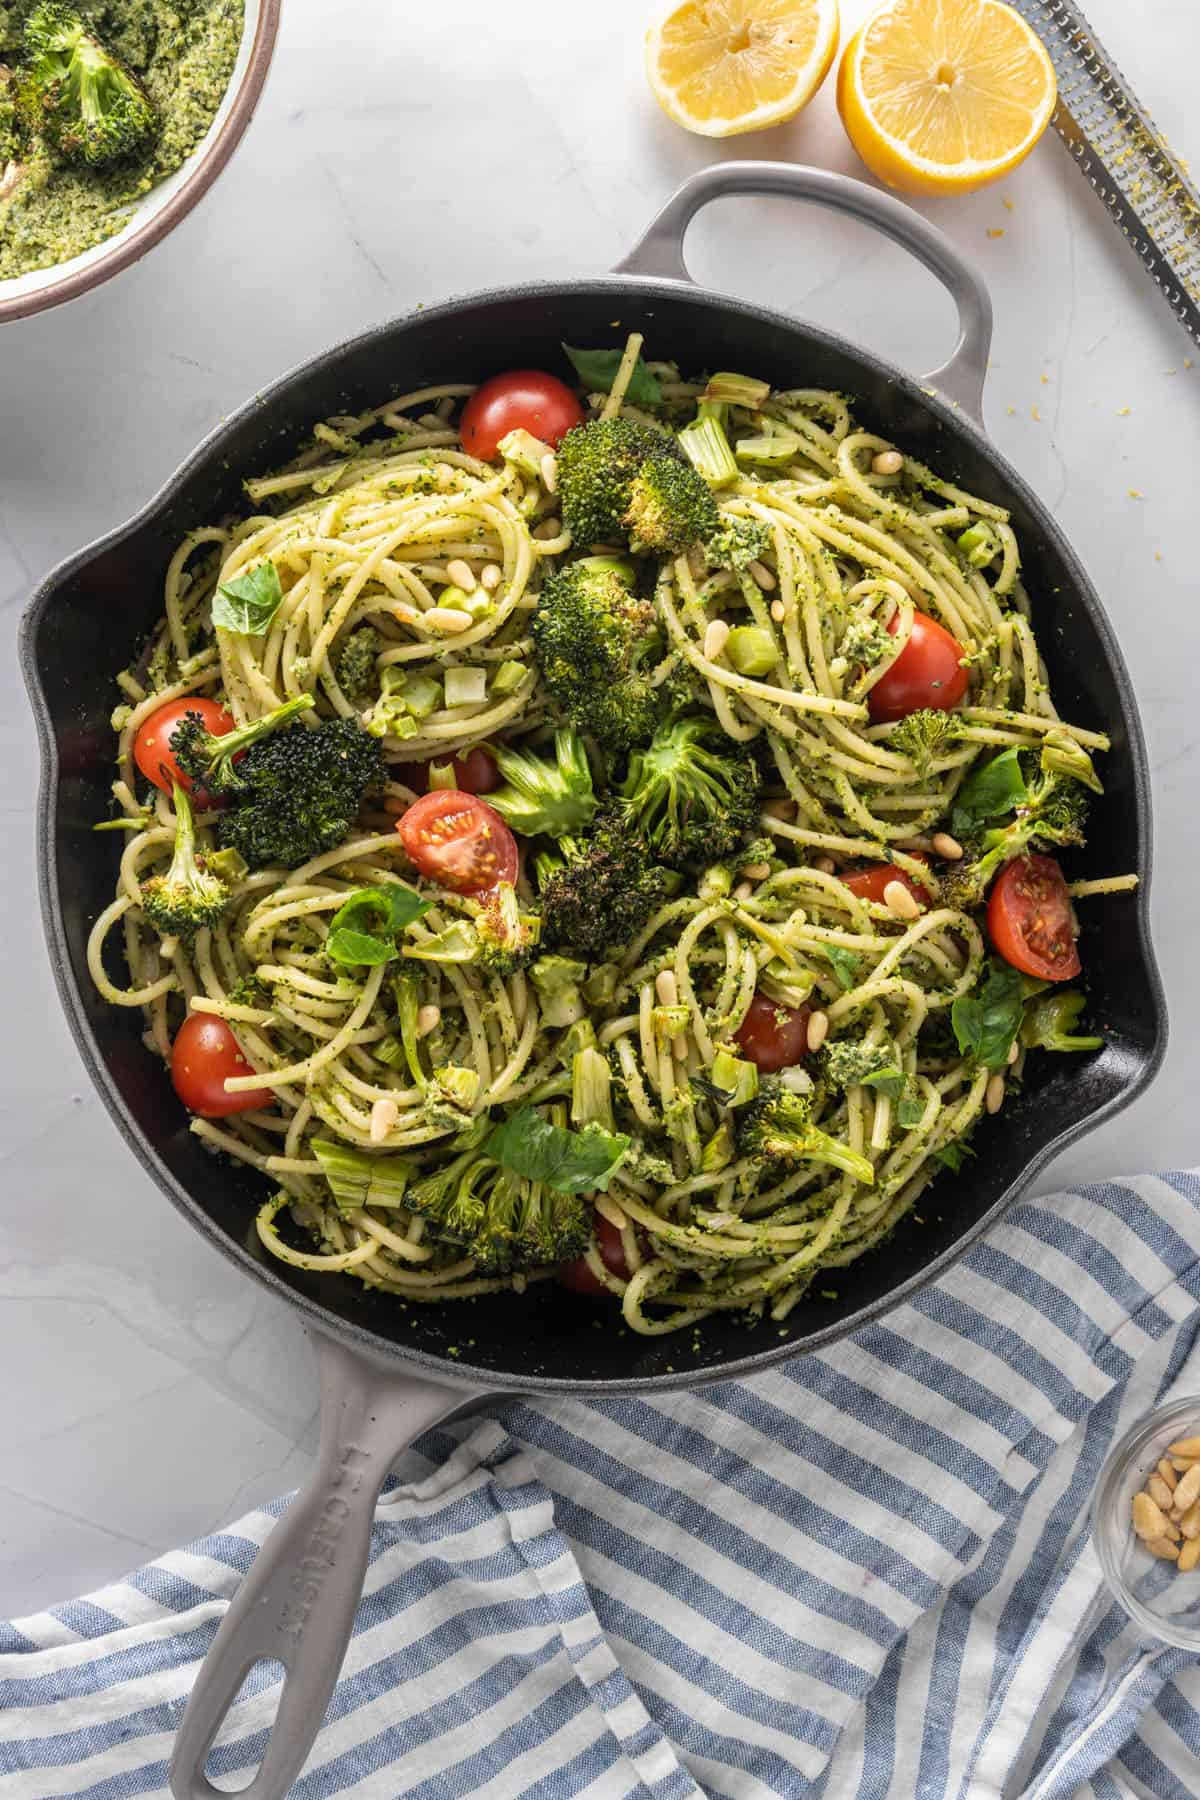 Skillet with fully assembled pasta